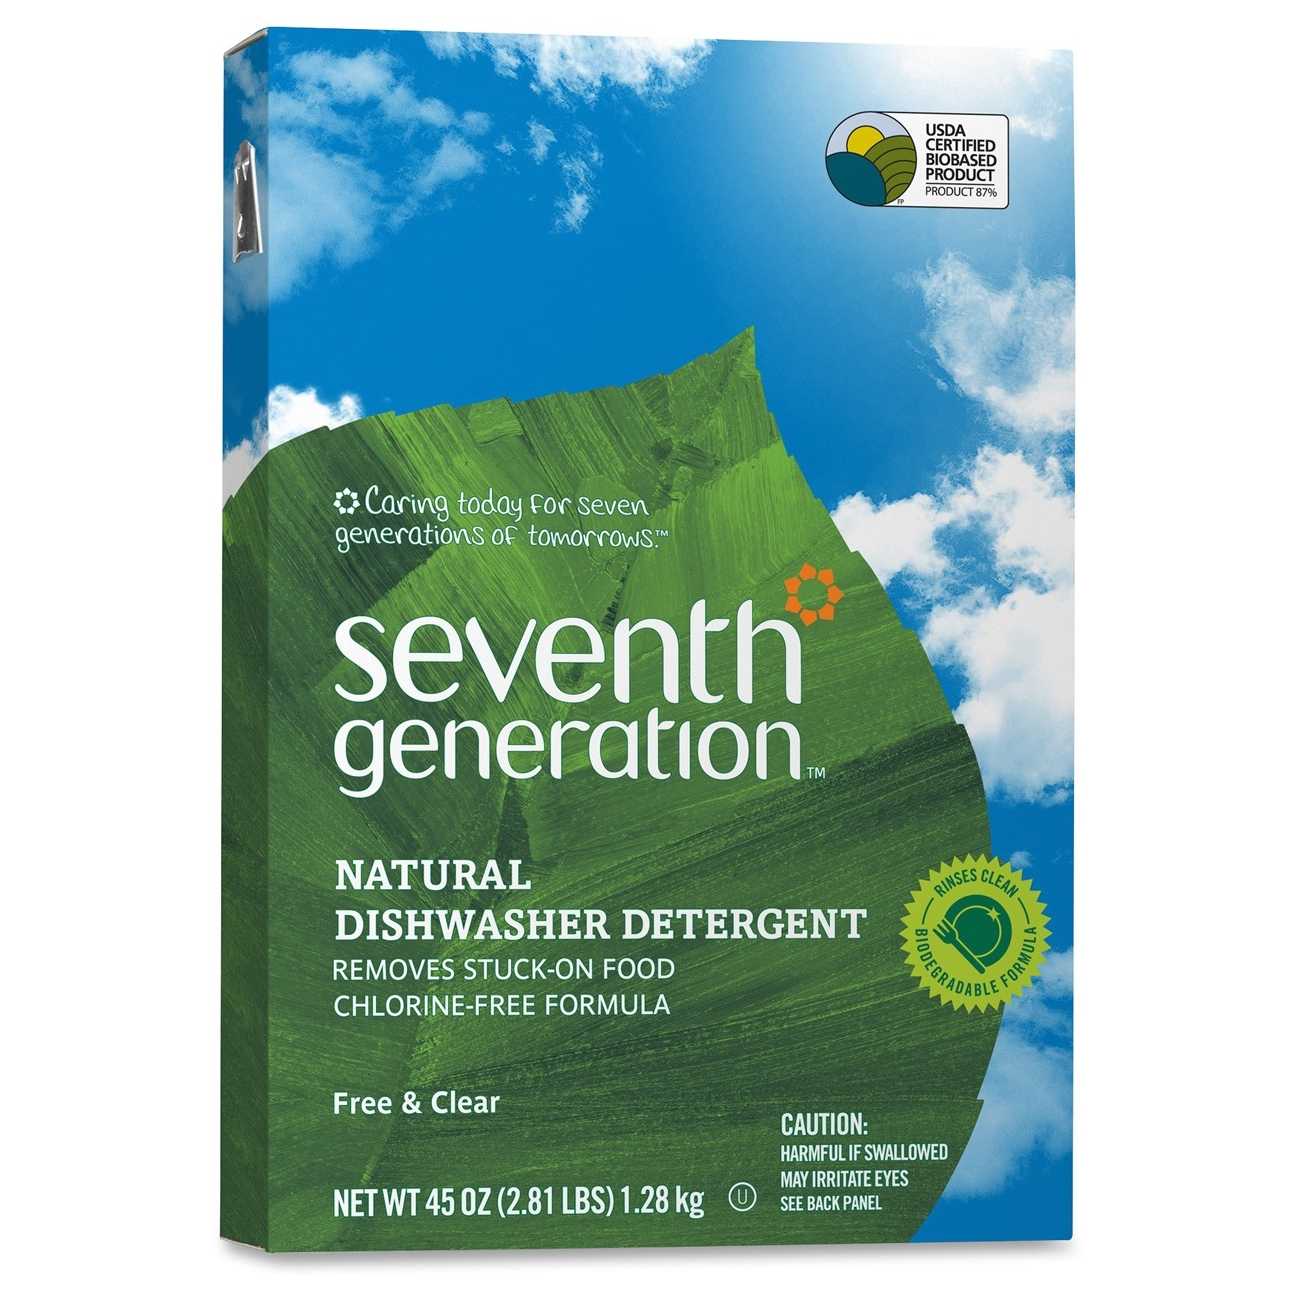 Seventh Generation Natural Dishwasher Detergent - Powder - 45 Oz [2.81 Lb] - Natural Scent - 12 / Carton - Clear (22150ct)